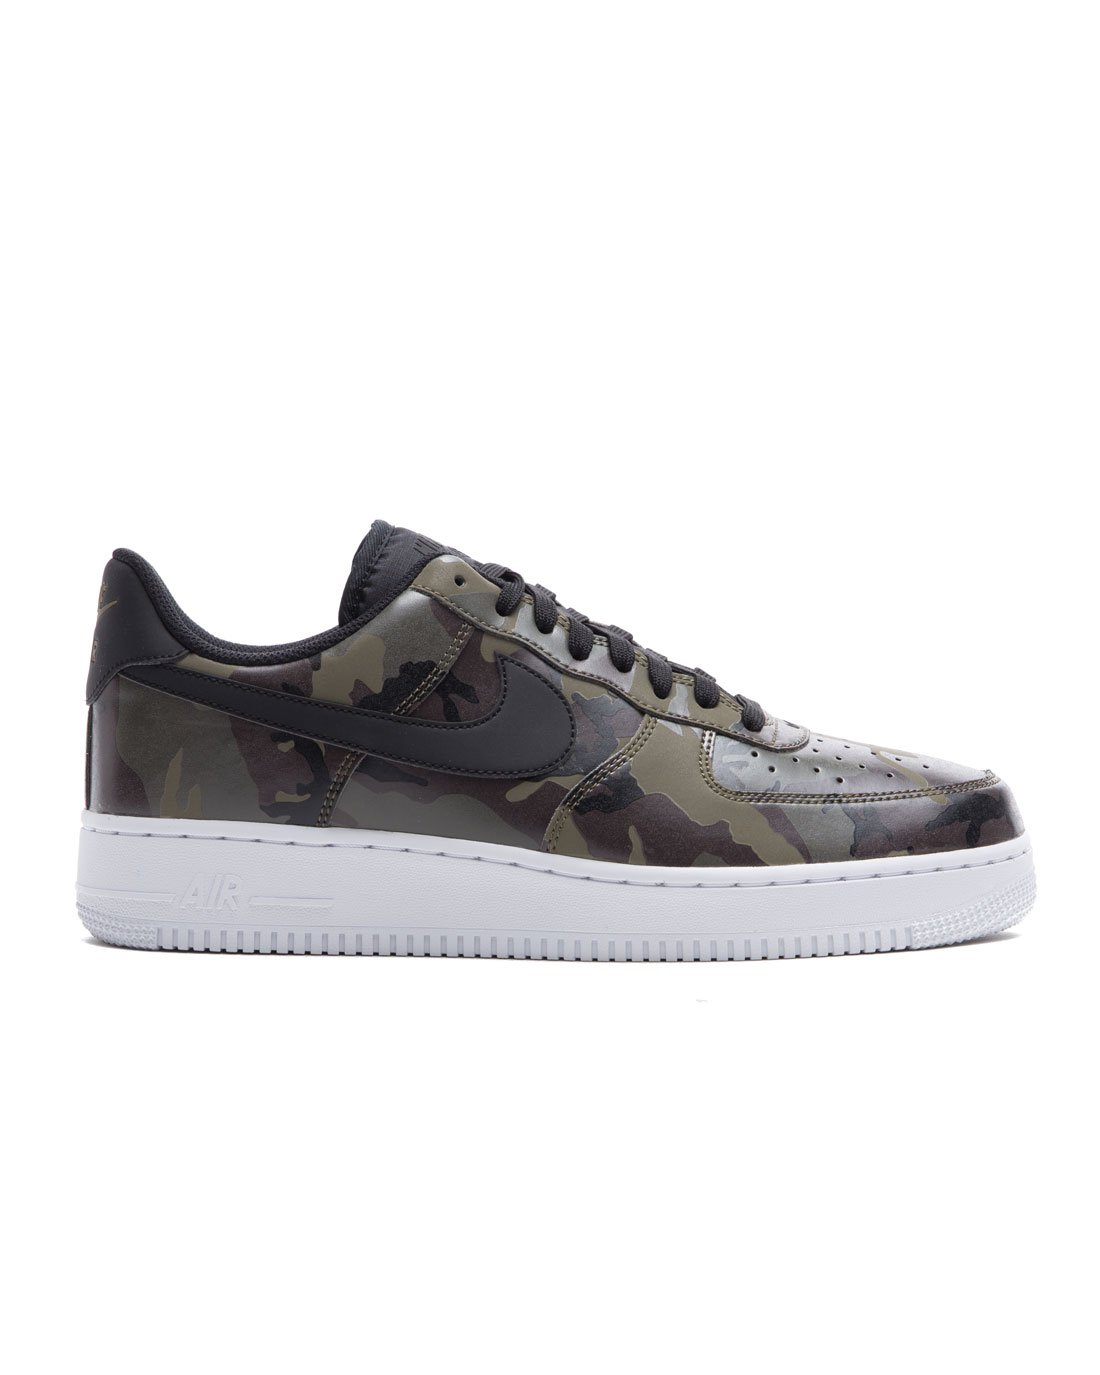 huge selection of 32cce 62c9f Galleon - Nike Mens Air Force 1  07 Low Camo Shoes Medium Olive Baroque  Brown Sequoia Black 823511-201 Size 11